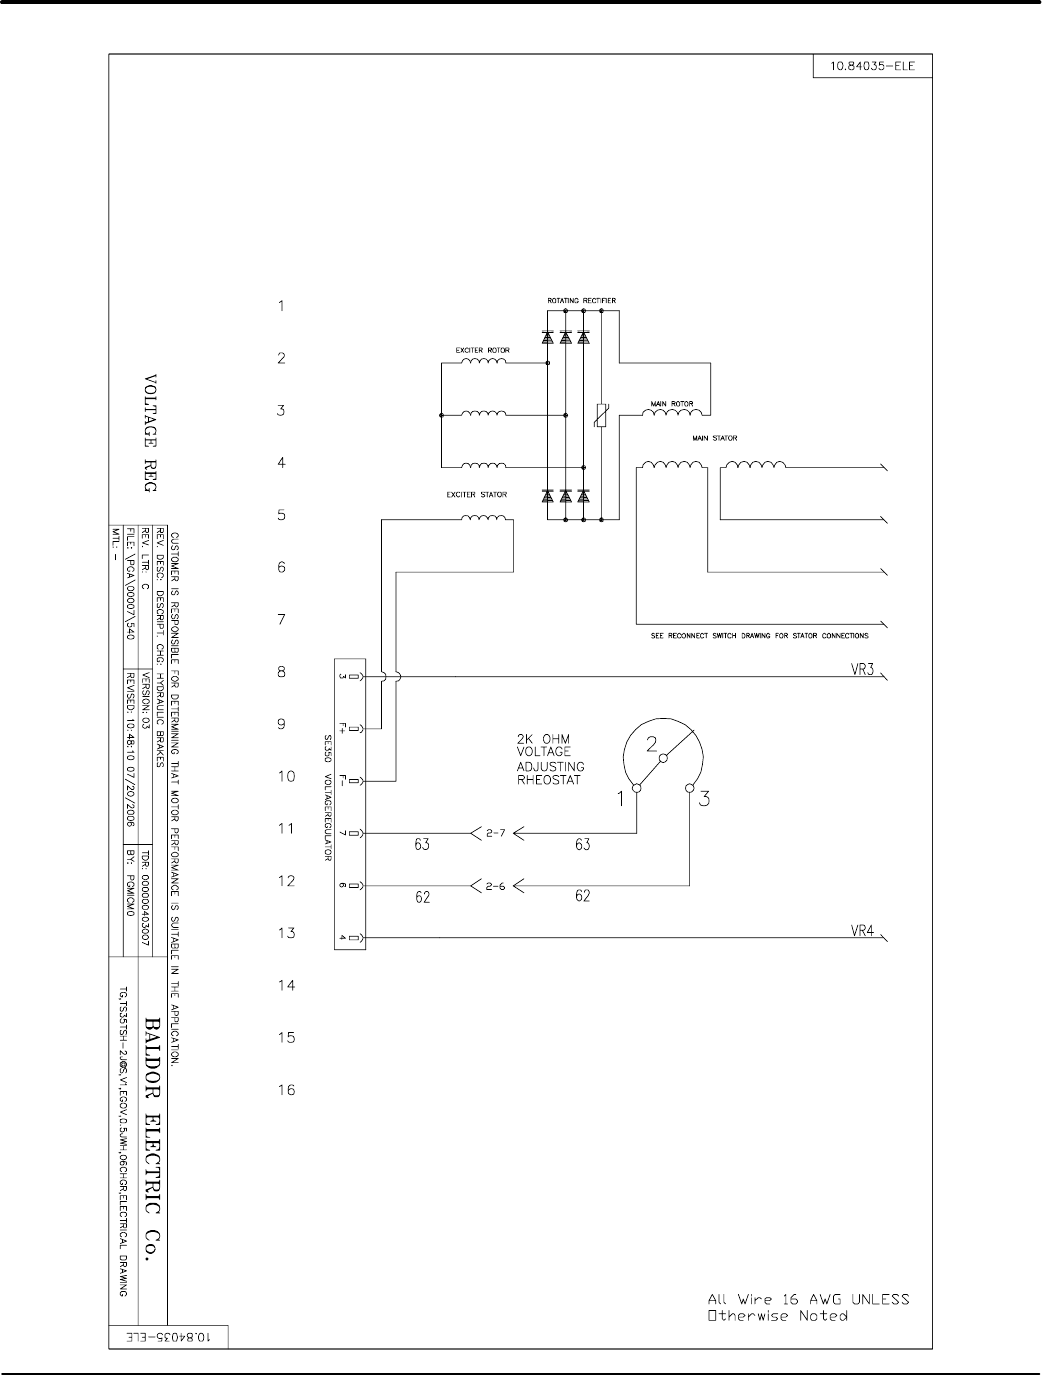 page 59 of baldor portable generator ts175 user guide | manualsonline.com  lawn and garden manuals - manuals online